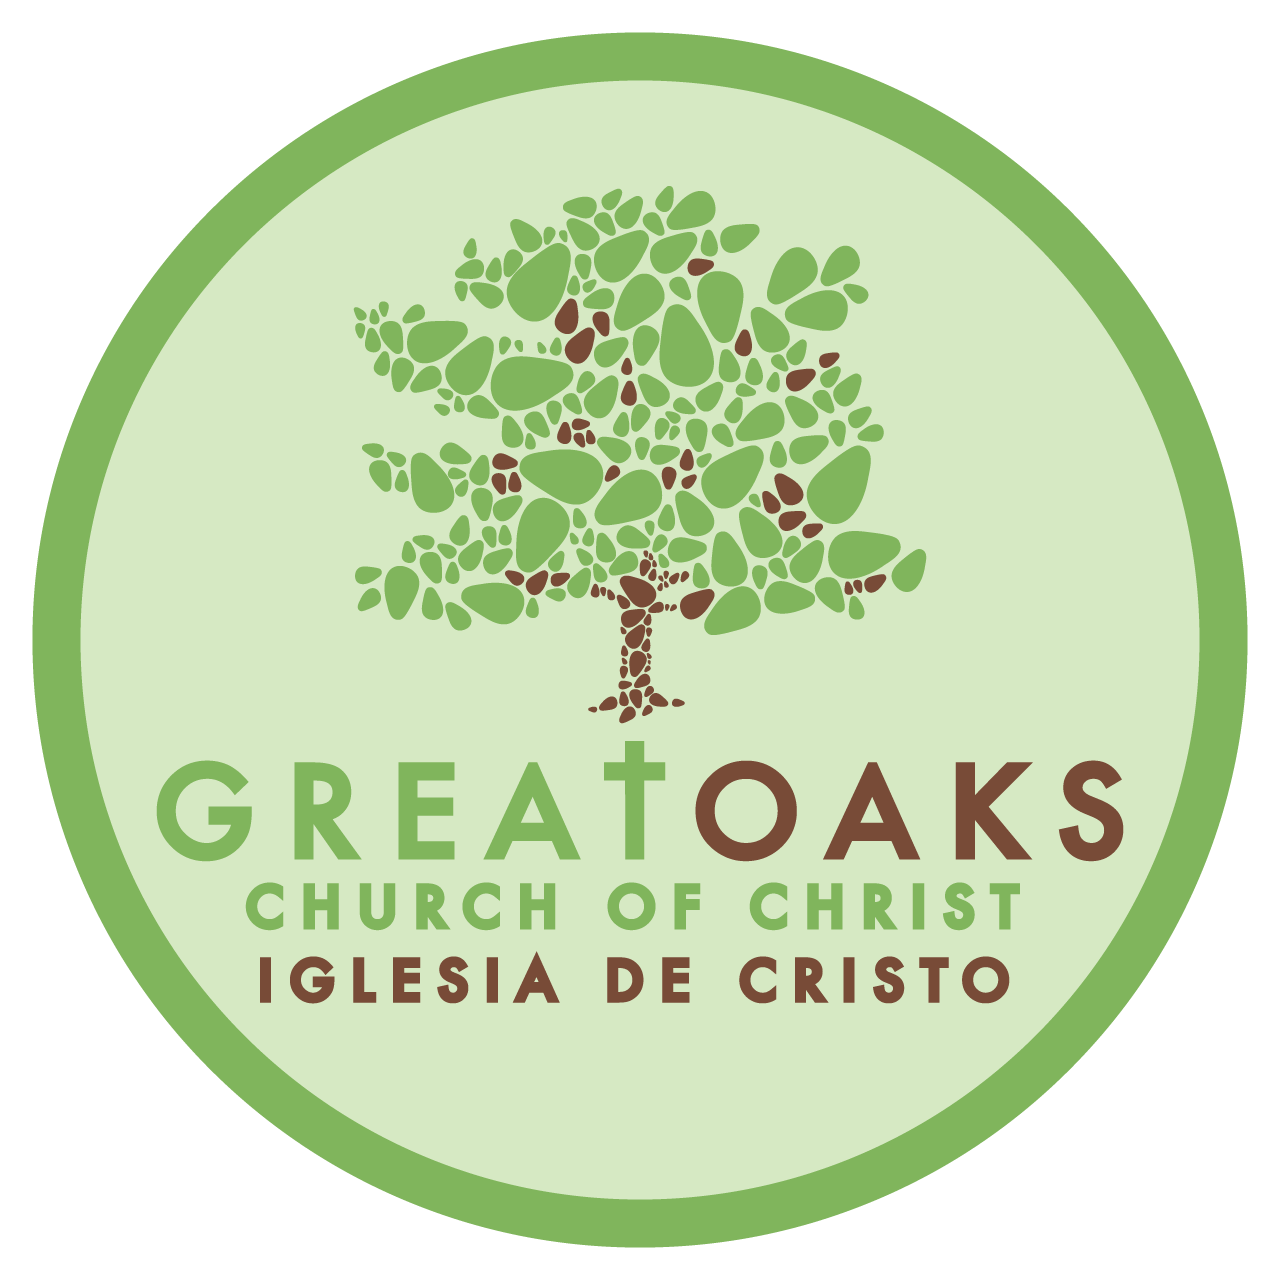 Want to See More About Great Oaks?